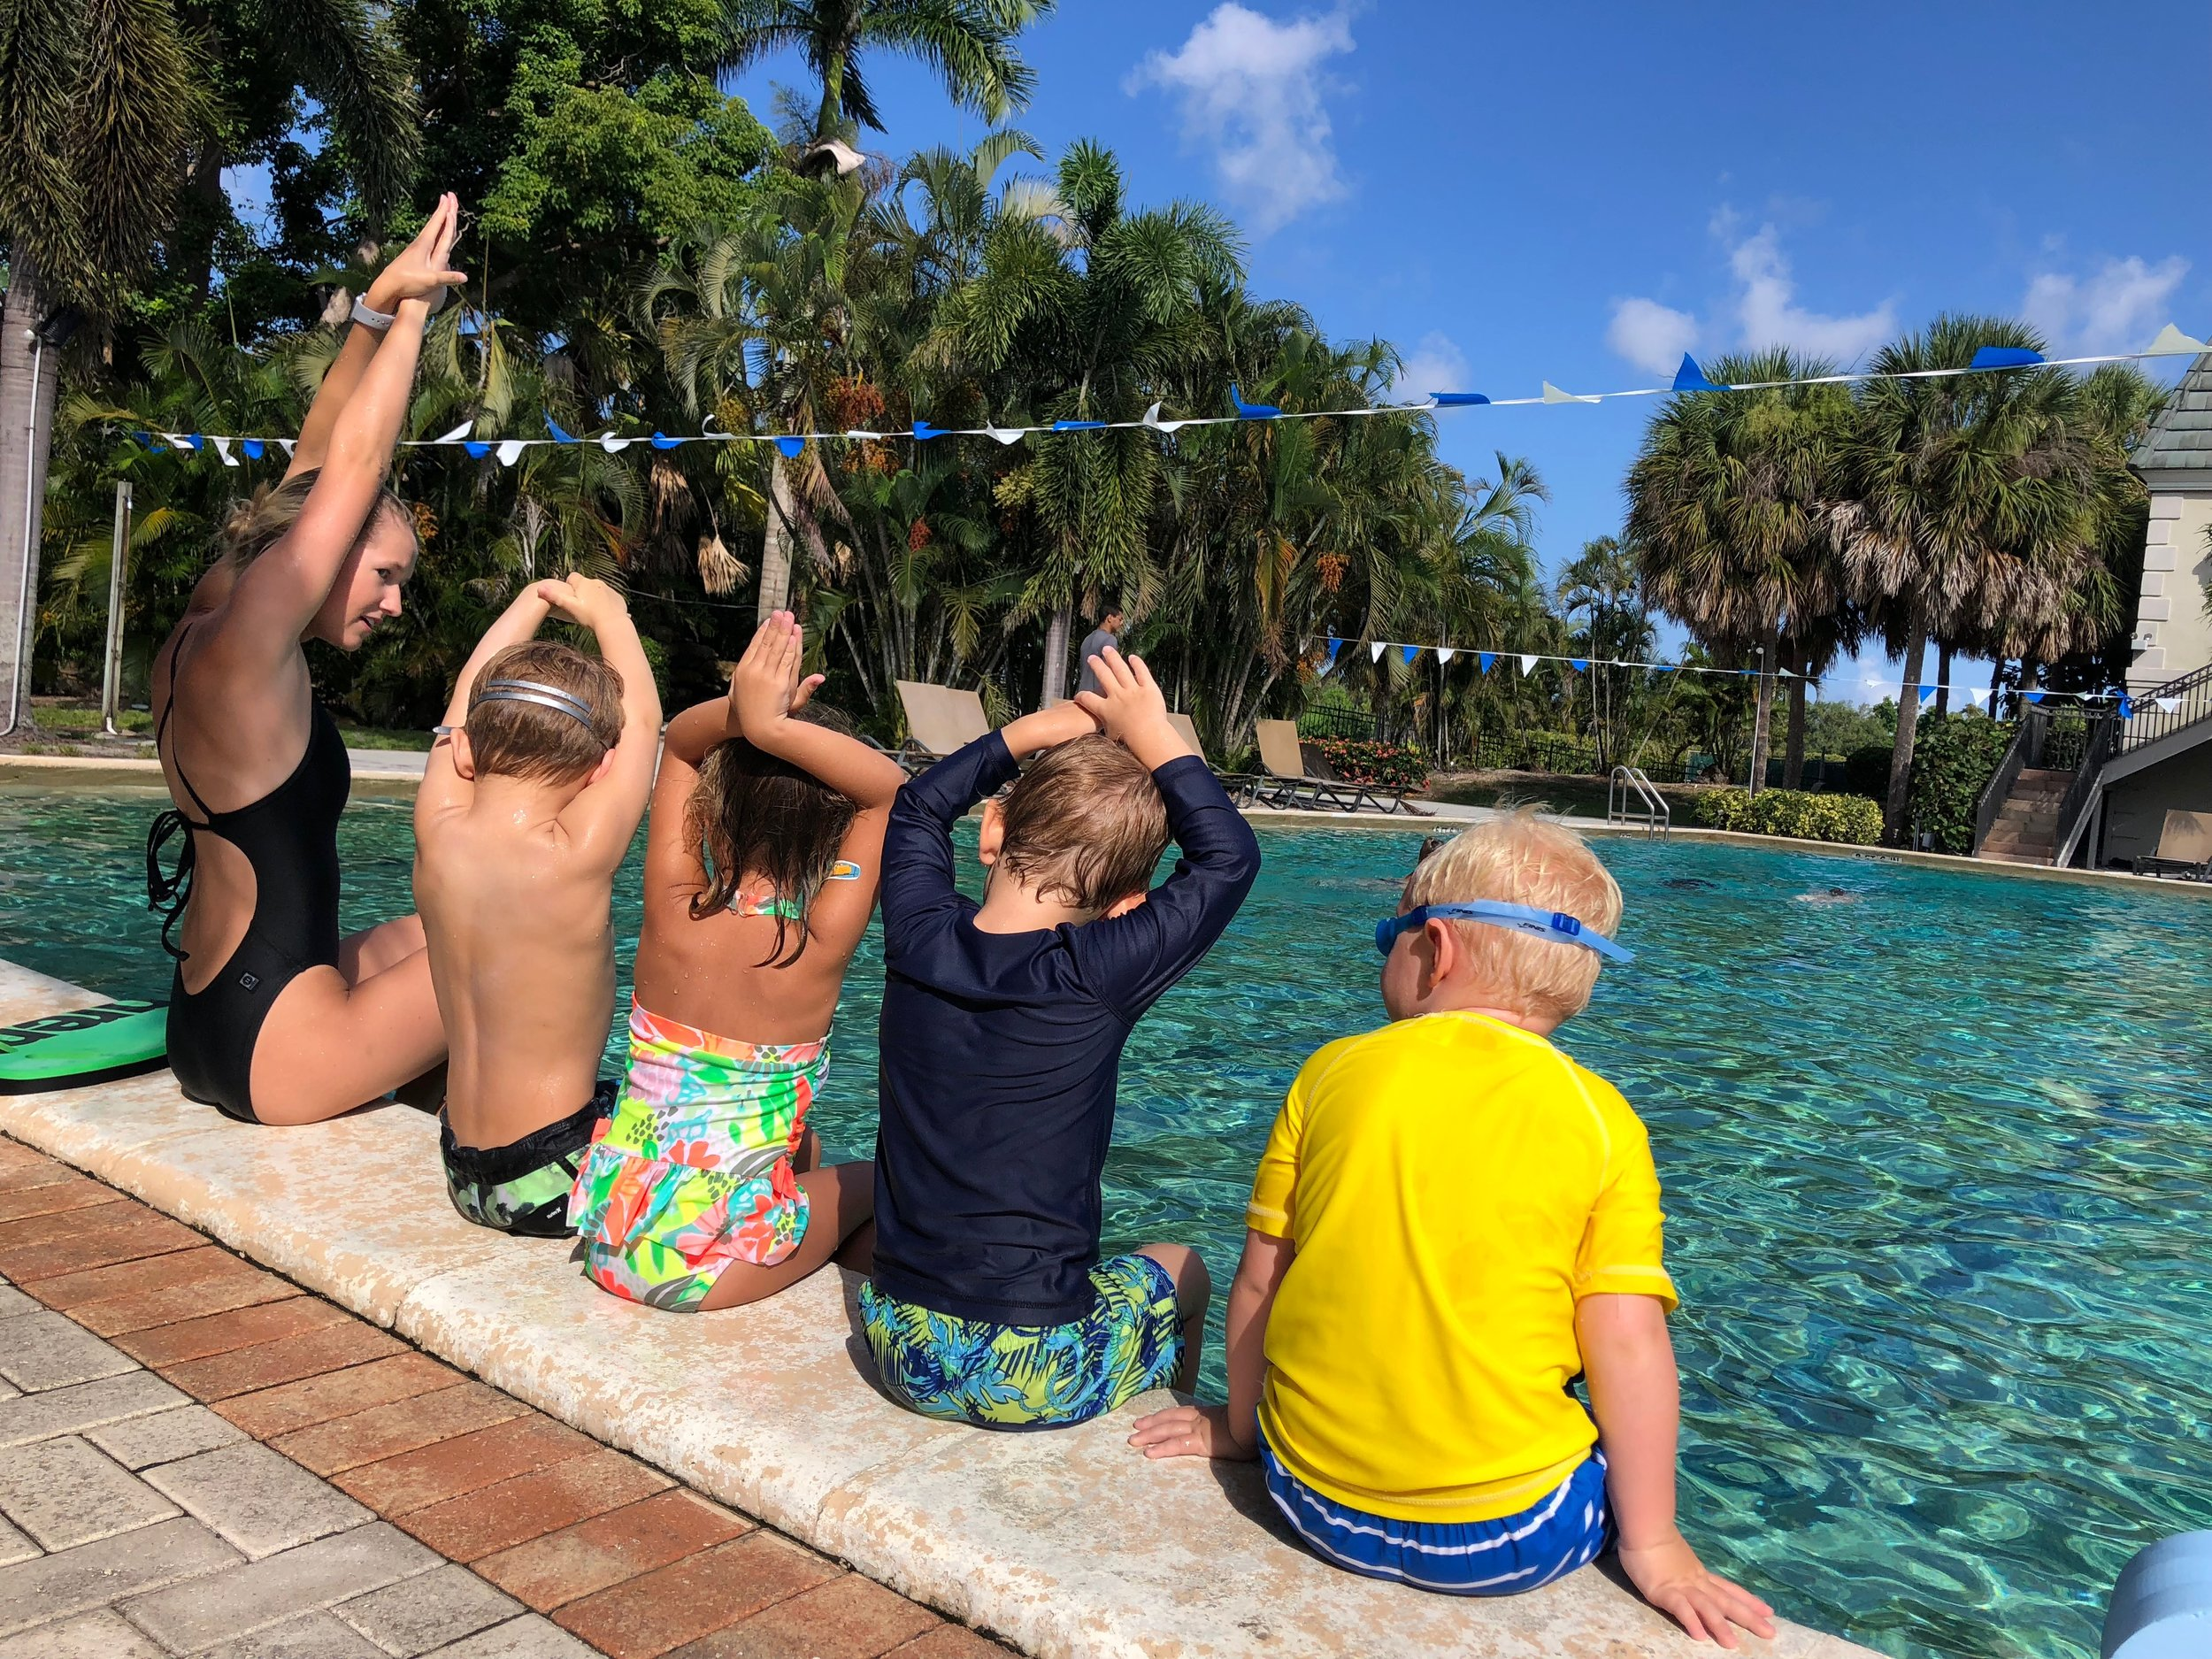 Beginner - Age 4-8 YearsMax Student-Instructor Ratio4:1Price$85/monthLocationSanchez-Casal Academy4995 Airport Pulling Rd., Naples, FloridaDuration30 minutesWhat is this class?Beginner is an entry level class for children age 4 years and older. This class is designed to help participants progress into swimming further distance independently, while refining the necessary technicalities that make their bodies the most effective in the water.If your child enjoys the water but needs more practice and guidance, this is the class for you!